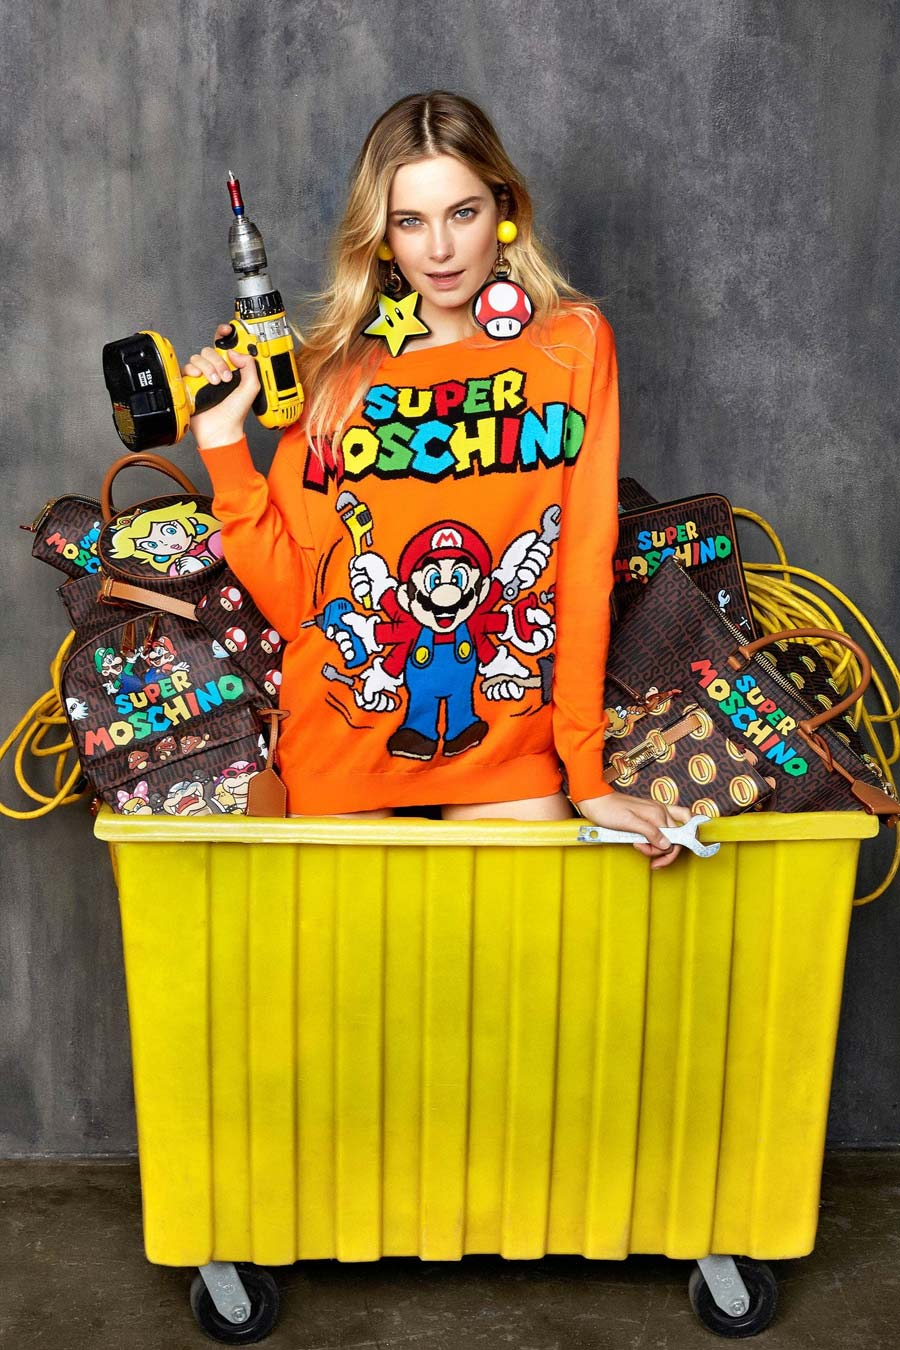 moschino-x-nintendo-super-moschino, moschino-x-nintendo, super-moschino, super-mario-bros-moschino, mario-bros-moschino, luigi-moschino, peach-moschino, princess-peach-moschino, princesse-peach-moschino, du-dessin-aux-podiums, dudessinauxpodiums, jeremy-scott-moschino-nintendo, jeremy-scott-mario-bros